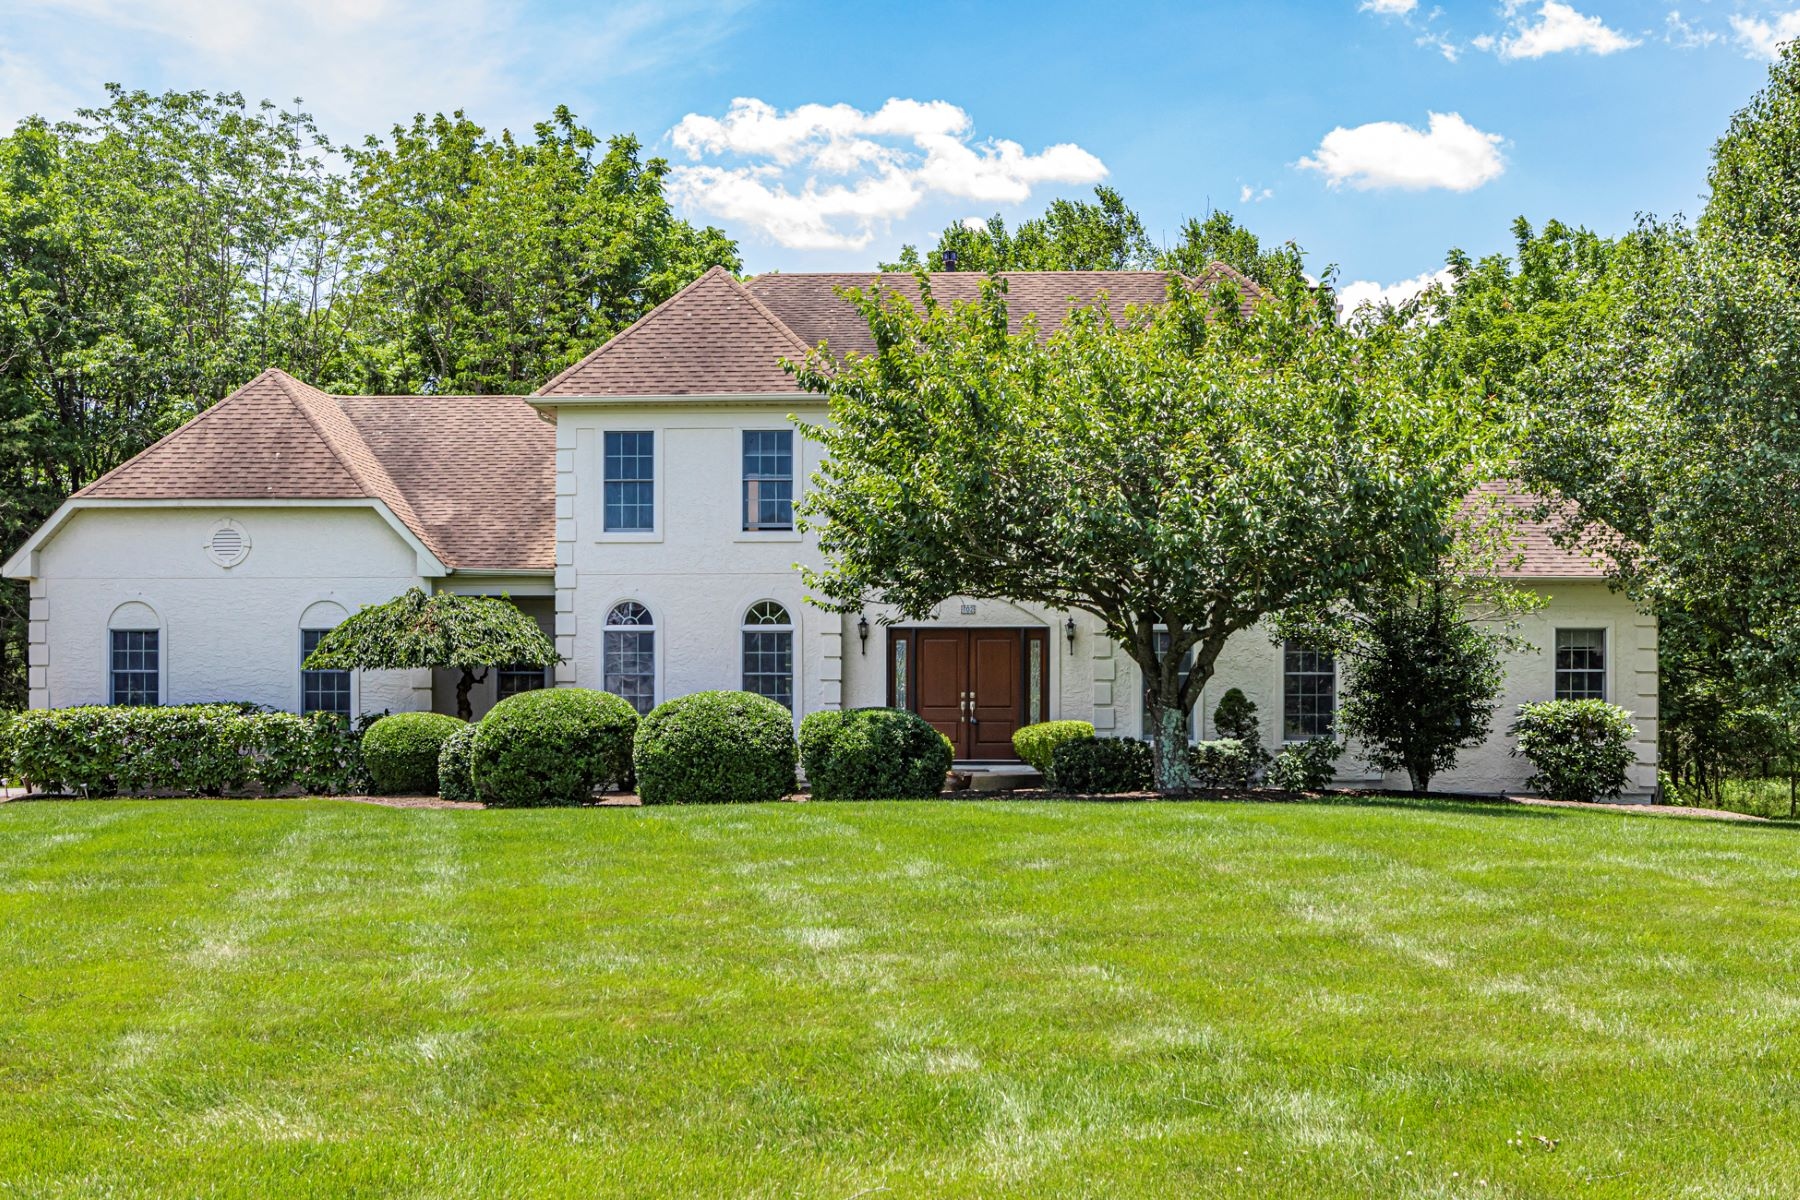 Single Family Homes for Sale at Sun Soaked And Stately 102 Montfort Drive Belle Mead, New Jersey 08502 United States